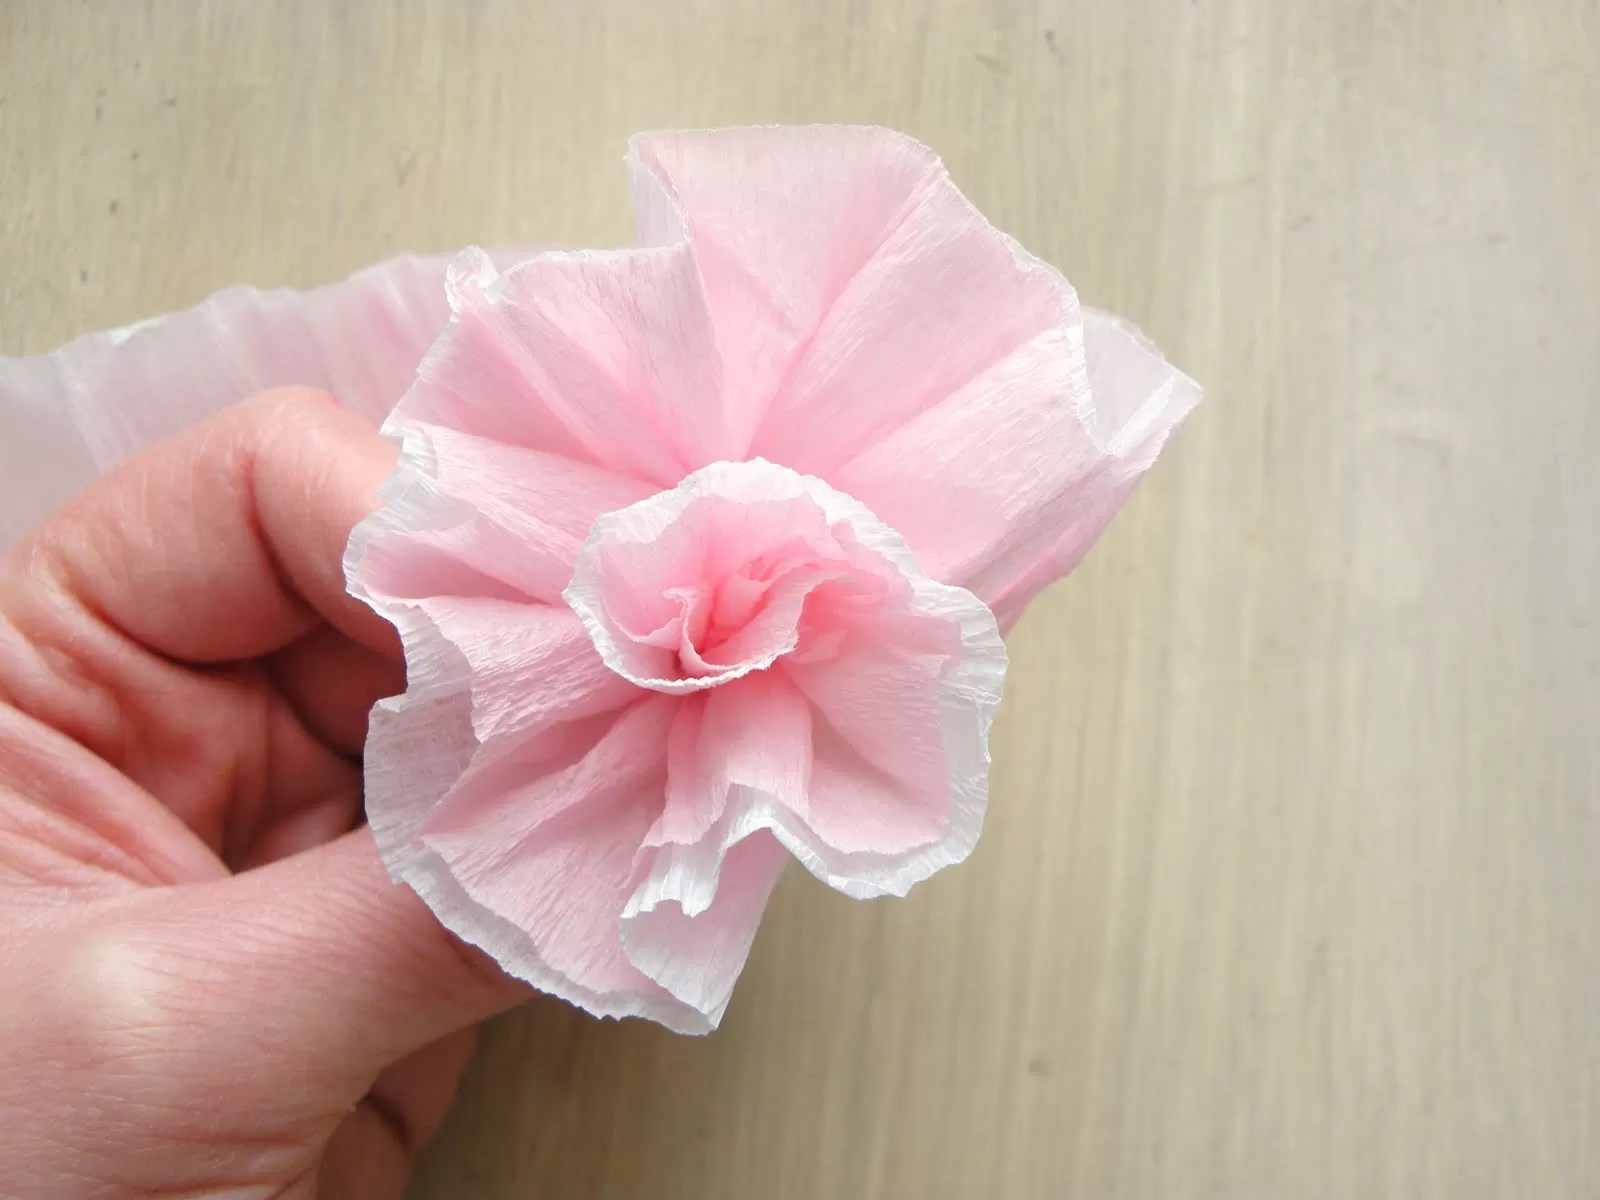 How To Make Handmade Flowers From Paper 20 Diy Crepe Paper Flowers With Tutorials Guide Patterns